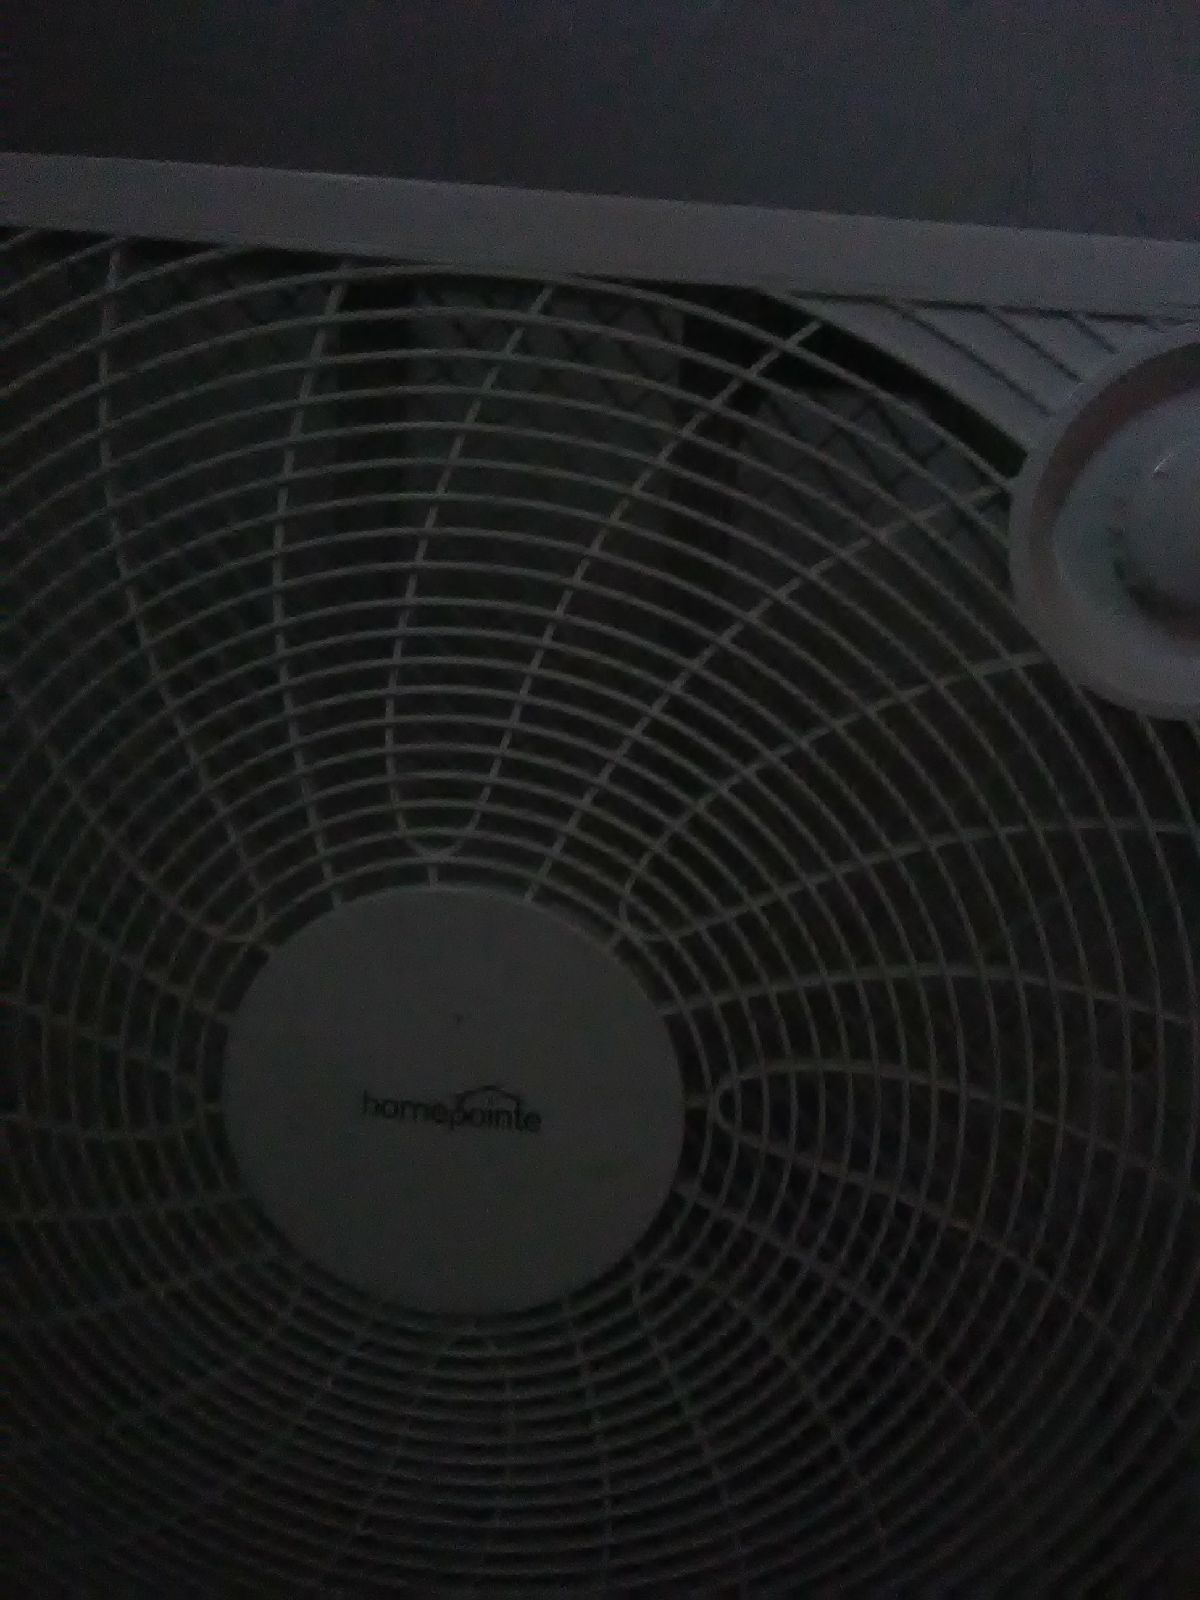 White fan works too good